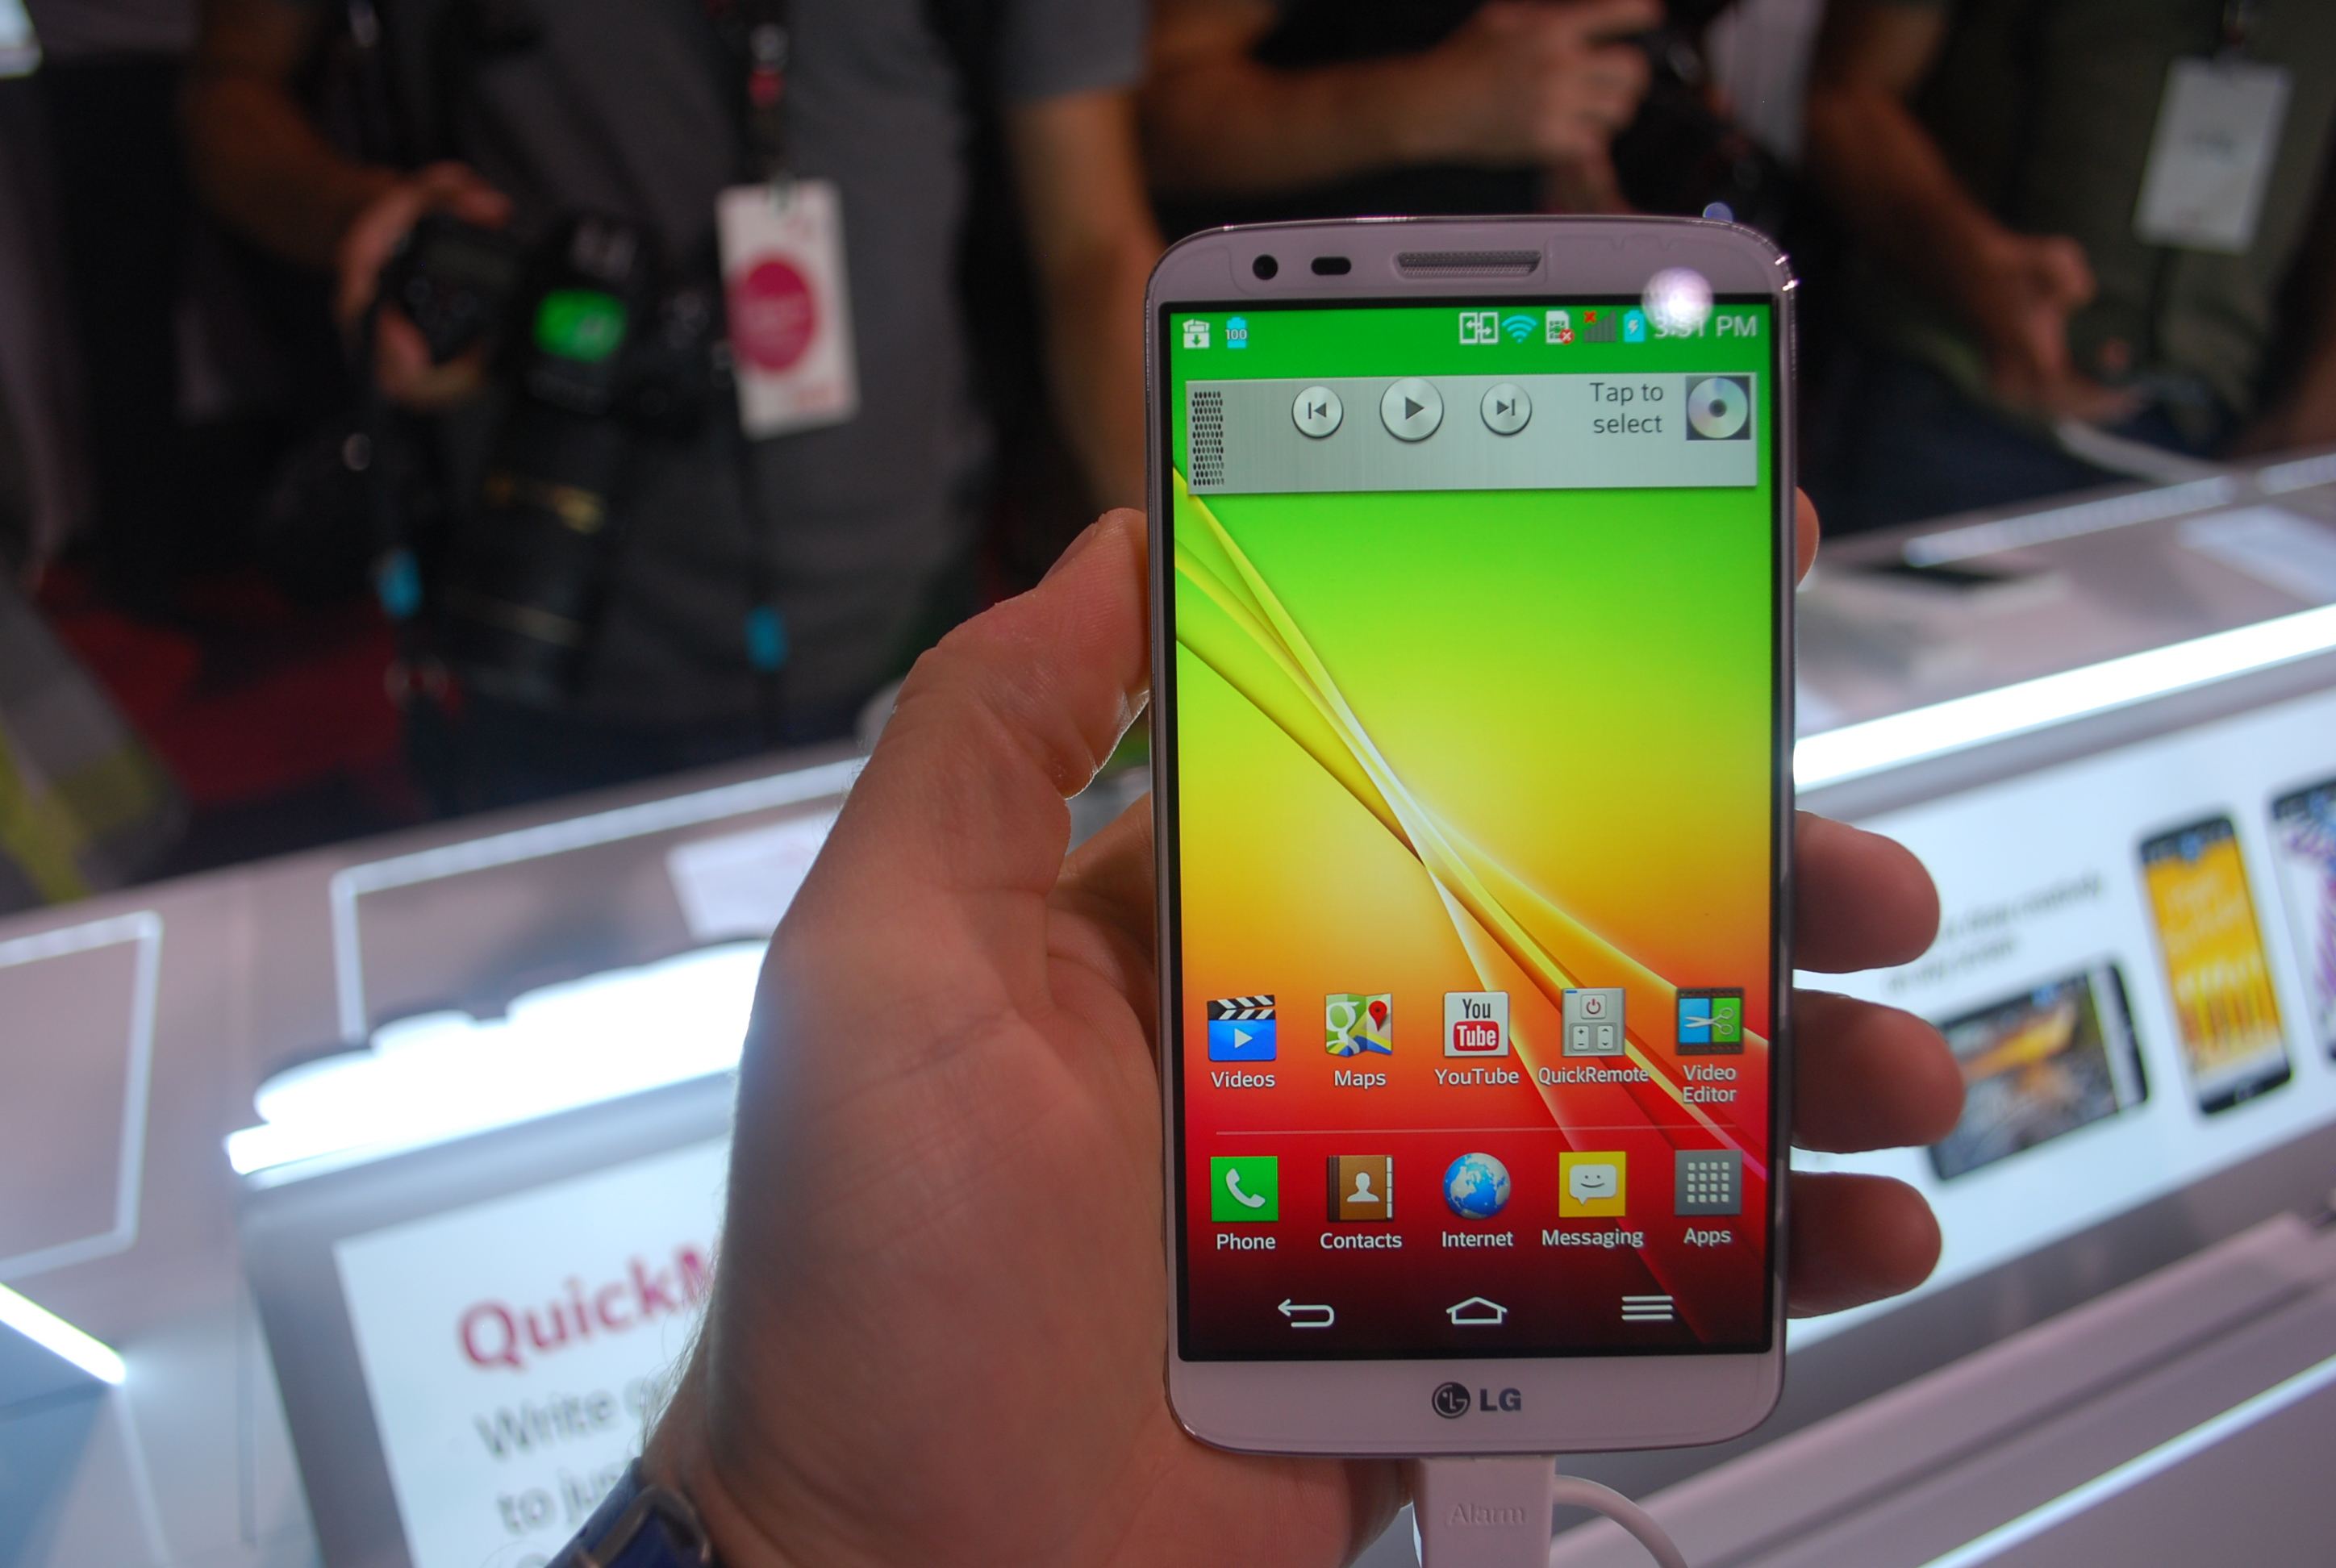 LGG2 http://gigaom.com/2013/08/10/android-this-week-moto-x-reviewed-lg-g2-debuts-asus-tapped-for-new-nexus-10/